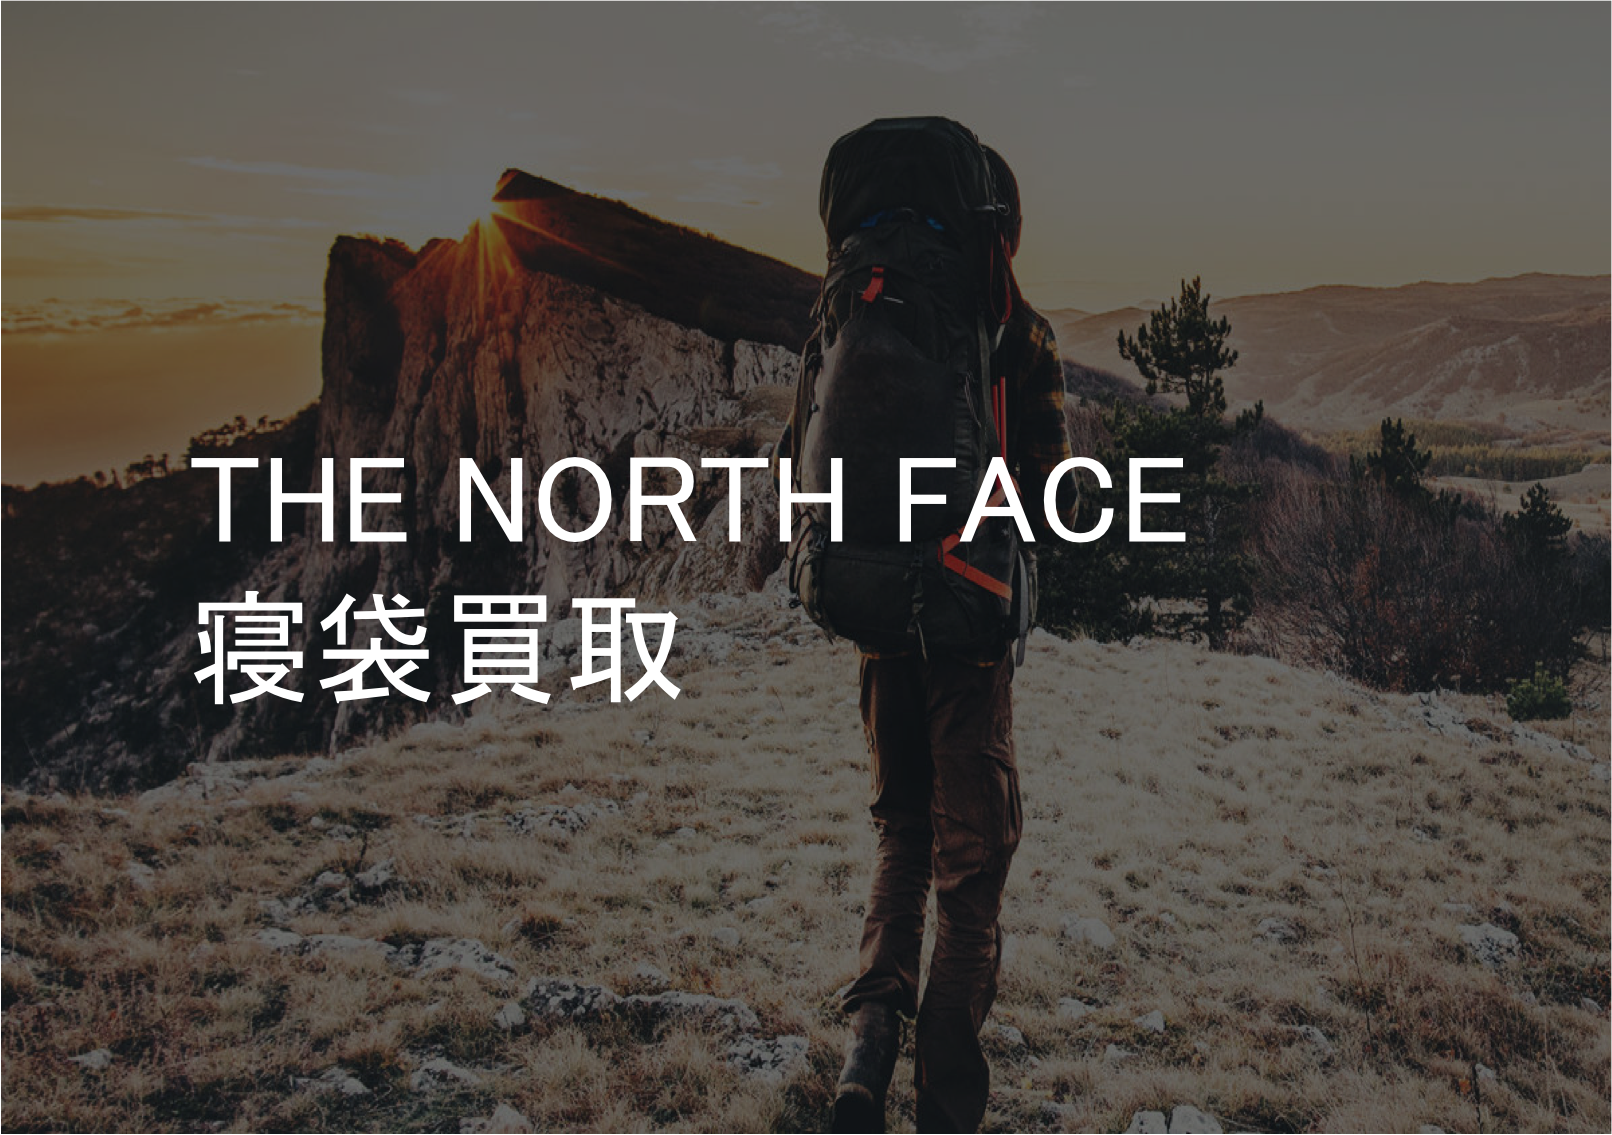 THE NORTH FACE寝袋買取なら